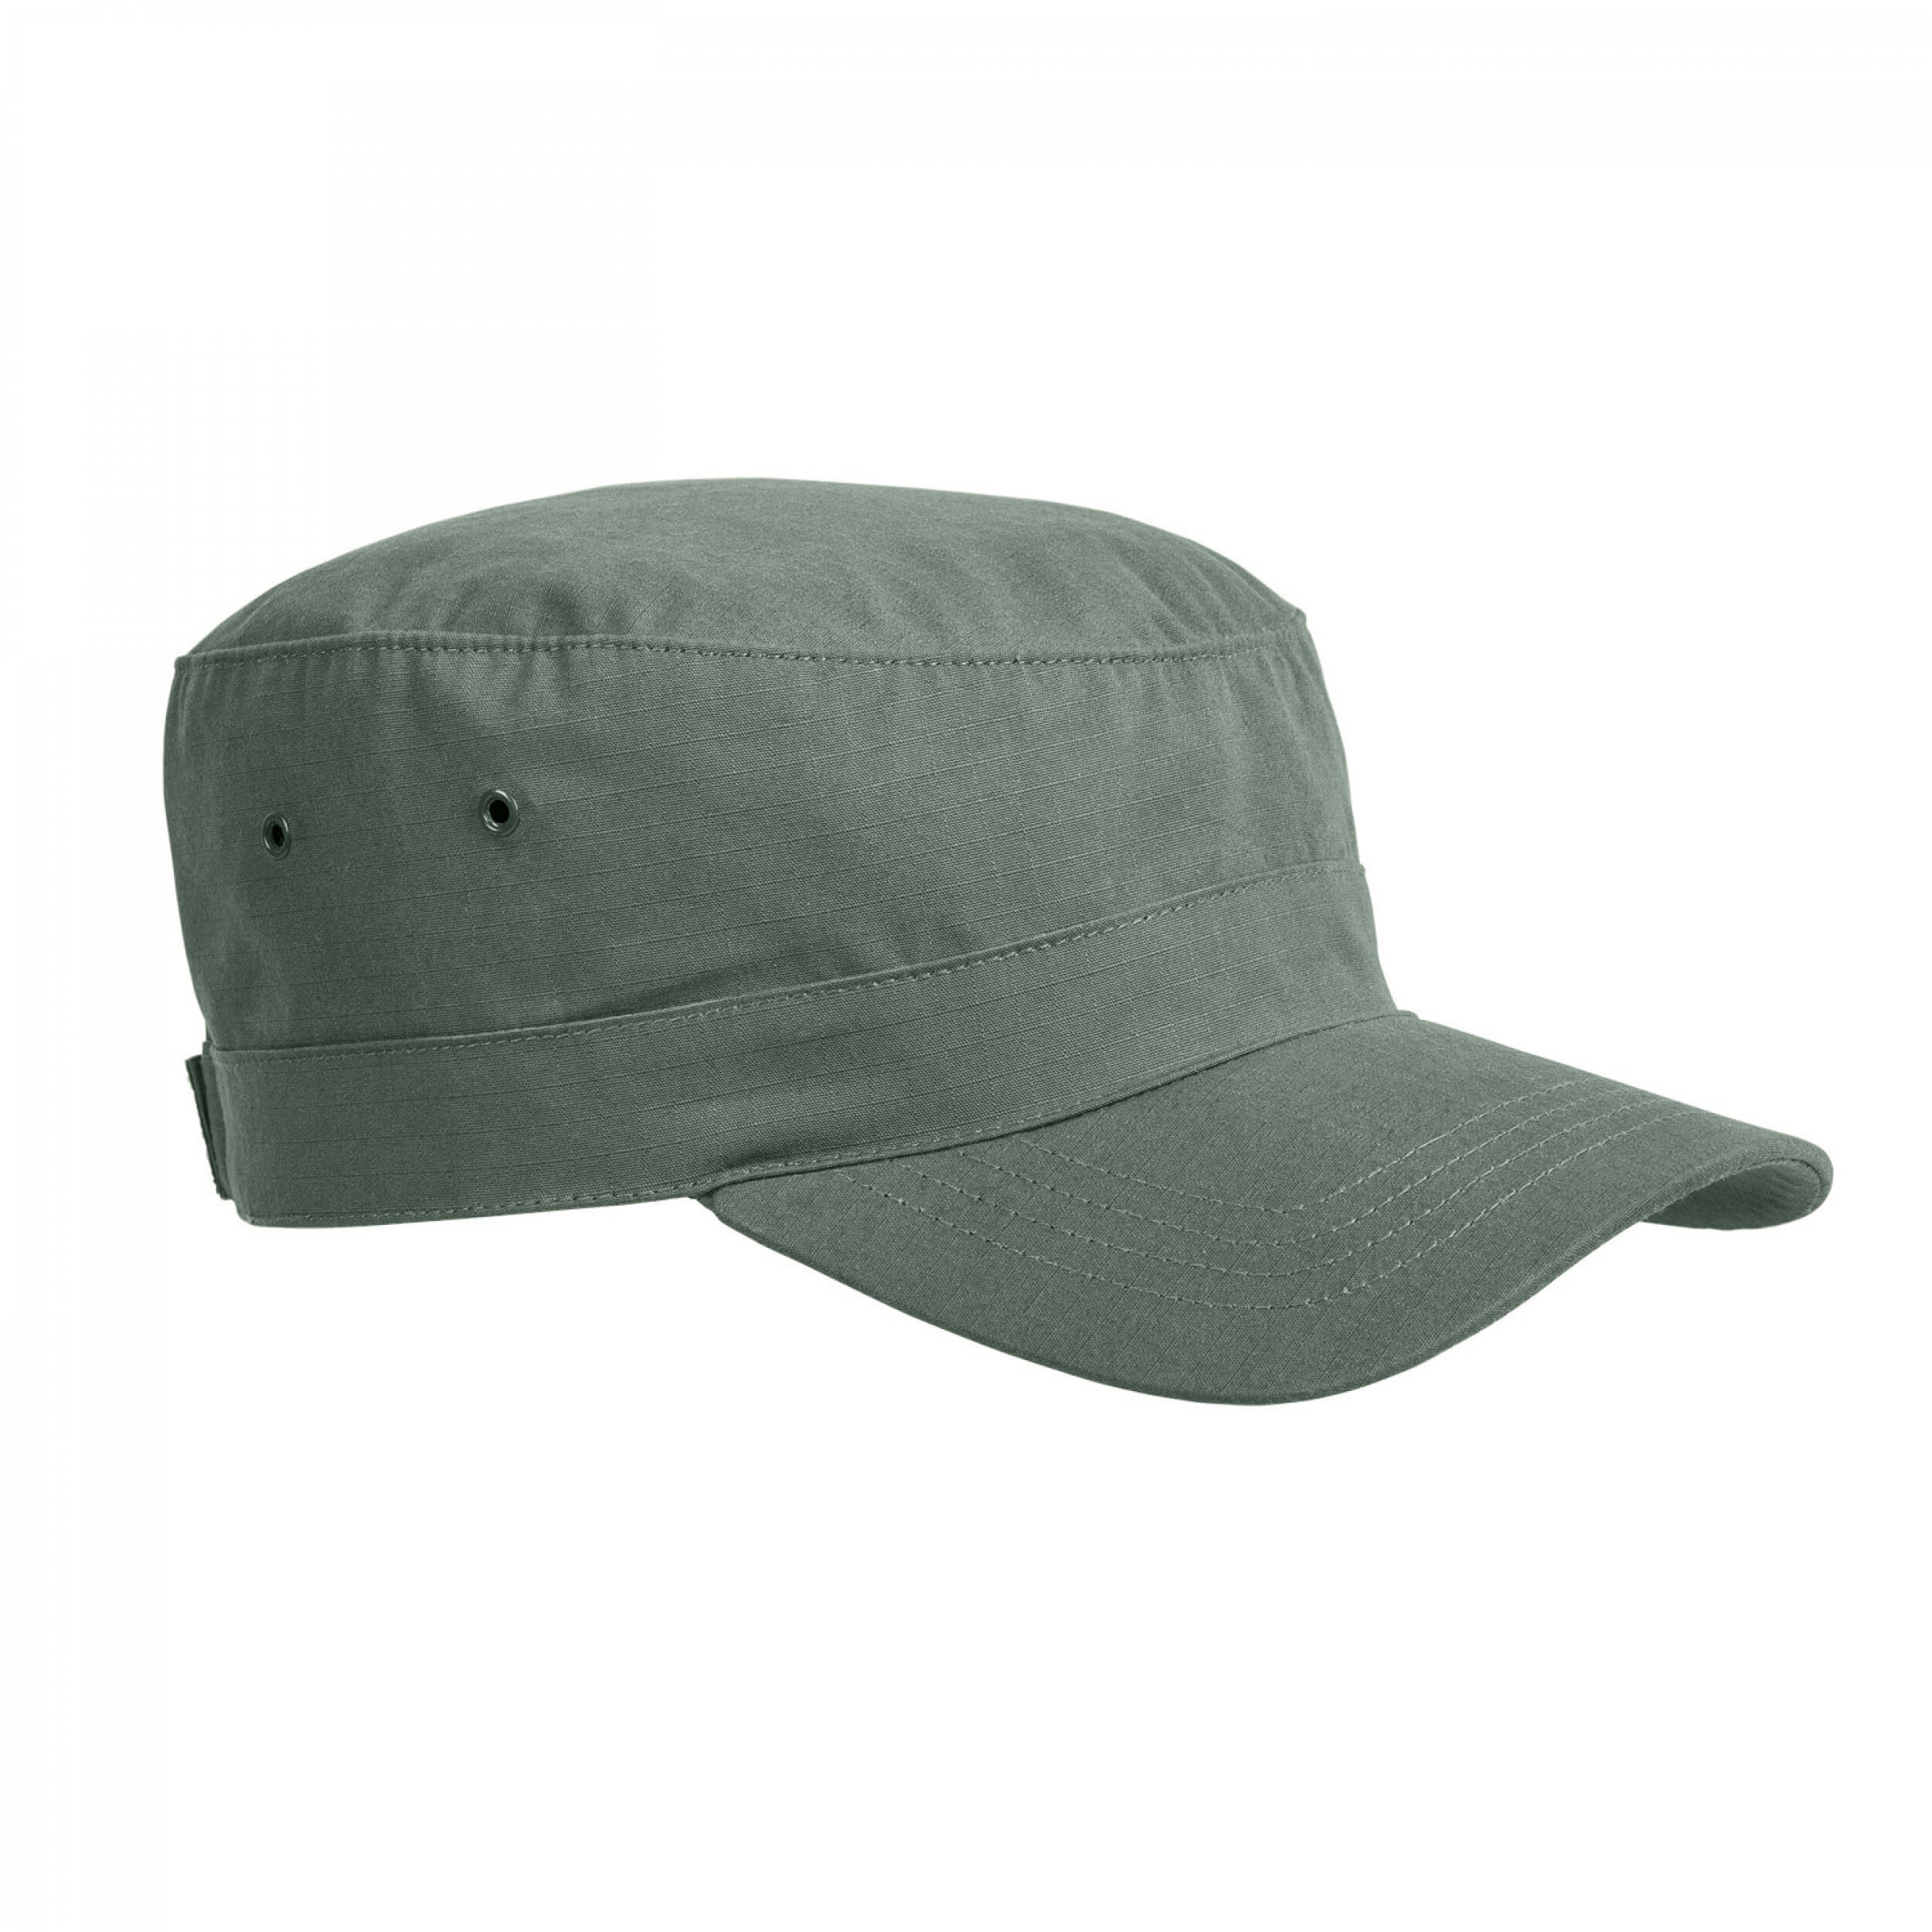 Helikon-Tex Combat Cap - Polycotton Ripstop - Olive Drab